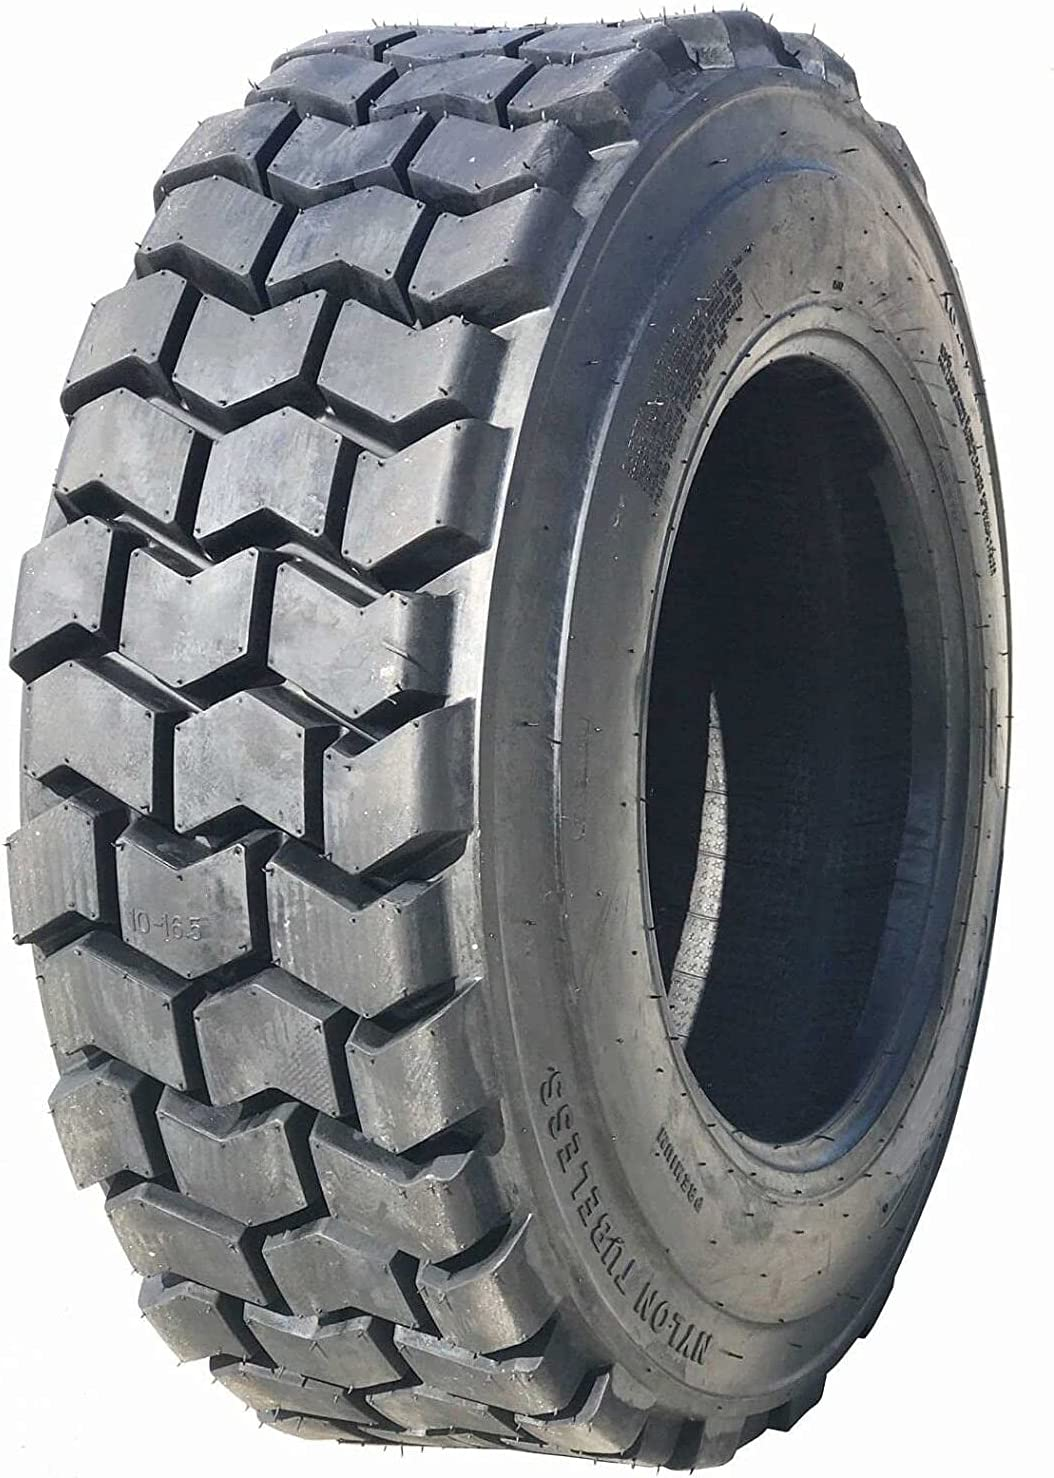 HORSESHOE 12x16.5 16 PLY Max 89% OFF Skid Steer Tire Department store Rim-G Loader w Tubeless